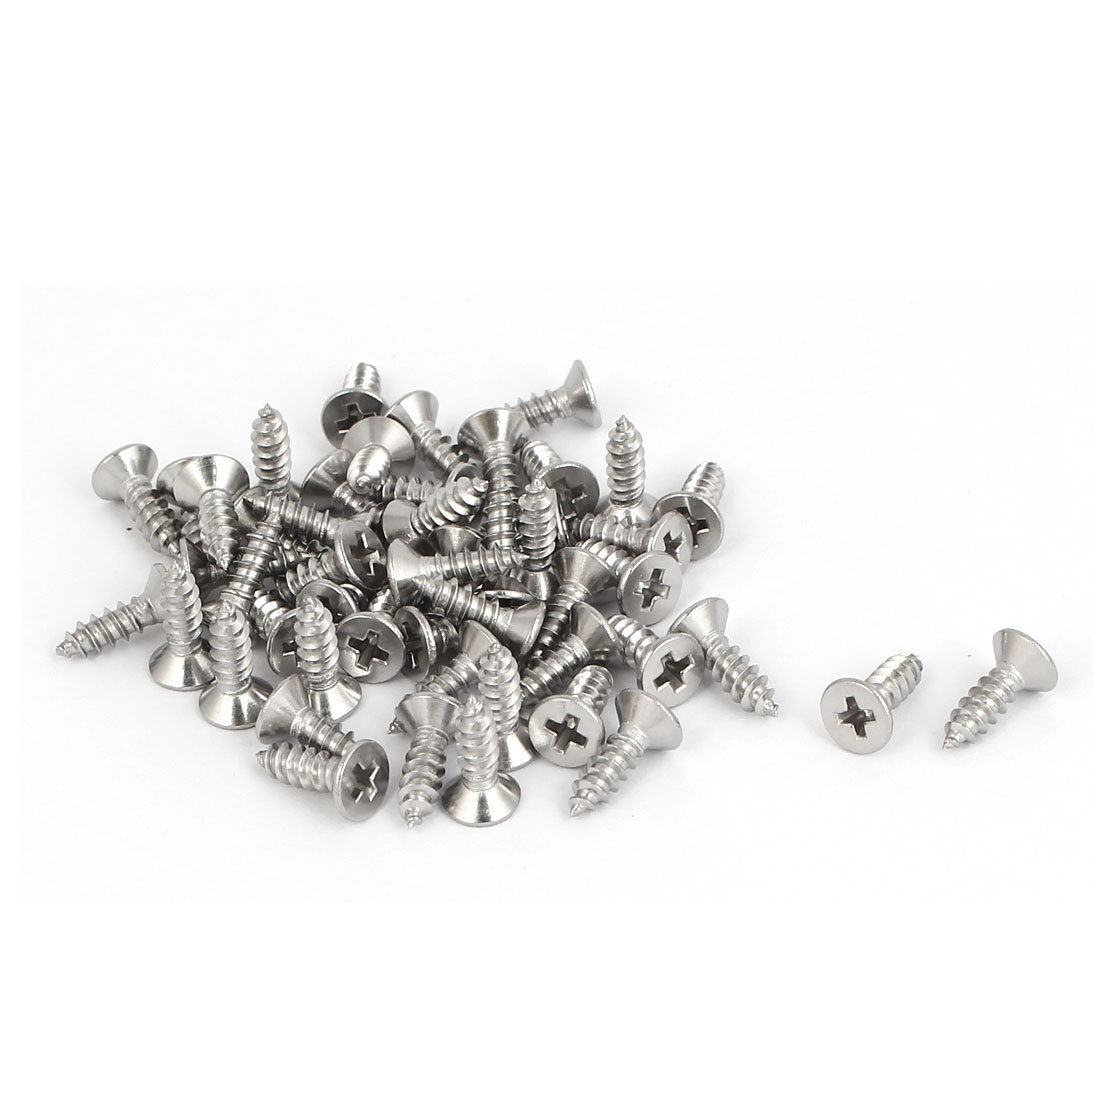 50 Pcs M2.9x9.5mm 316 Stainless Steel Countersunk Phillips Self Tapping Screws